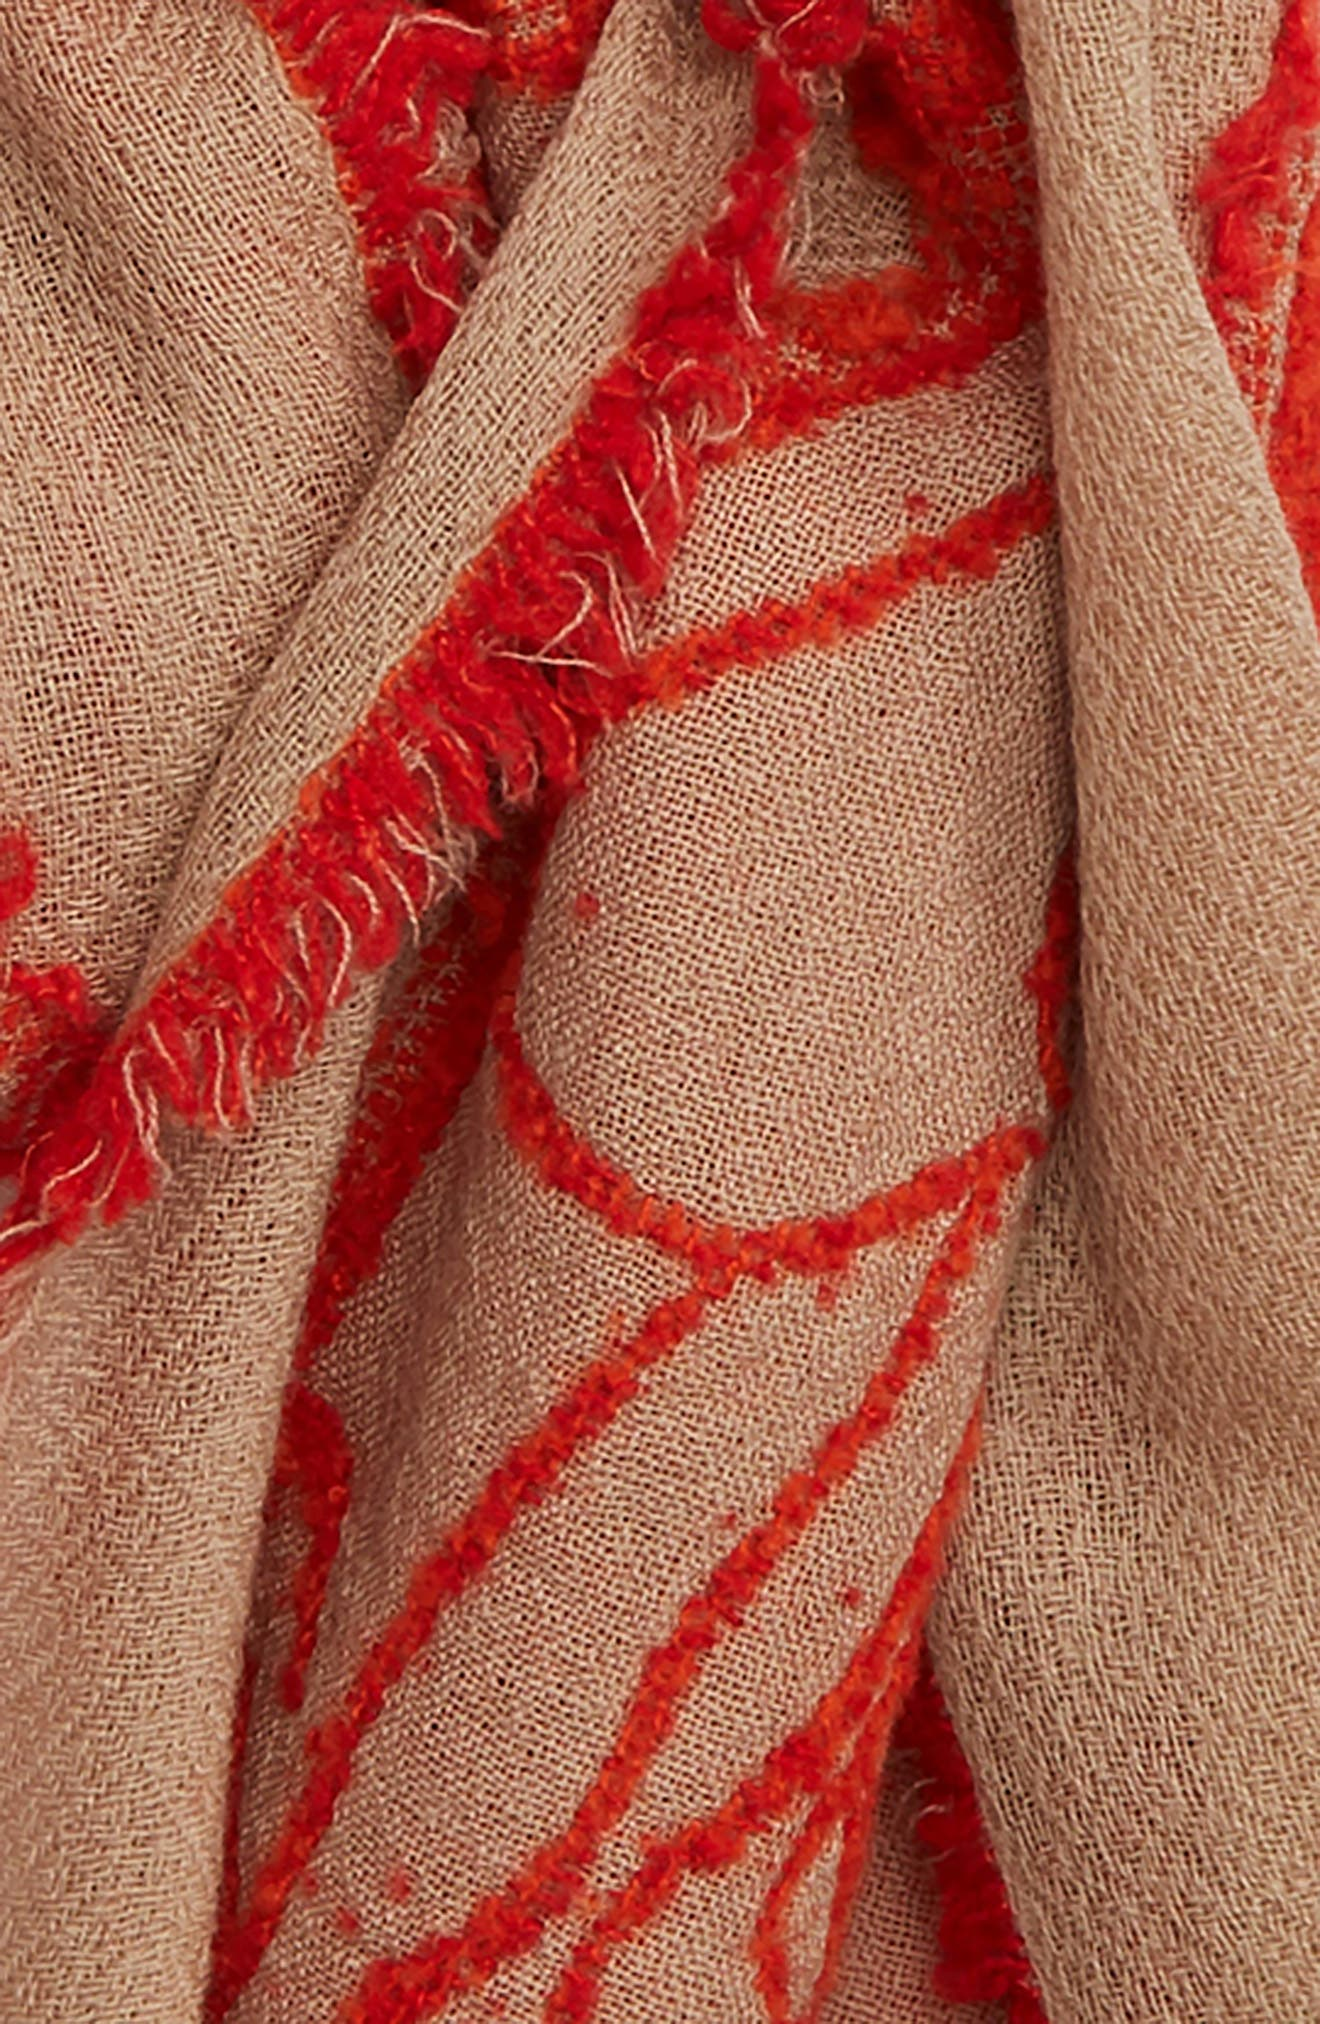 Rose Jacquard Wool Blend Scarf,                             Alternate thumbnail 3, color,                             RED X BEIGE